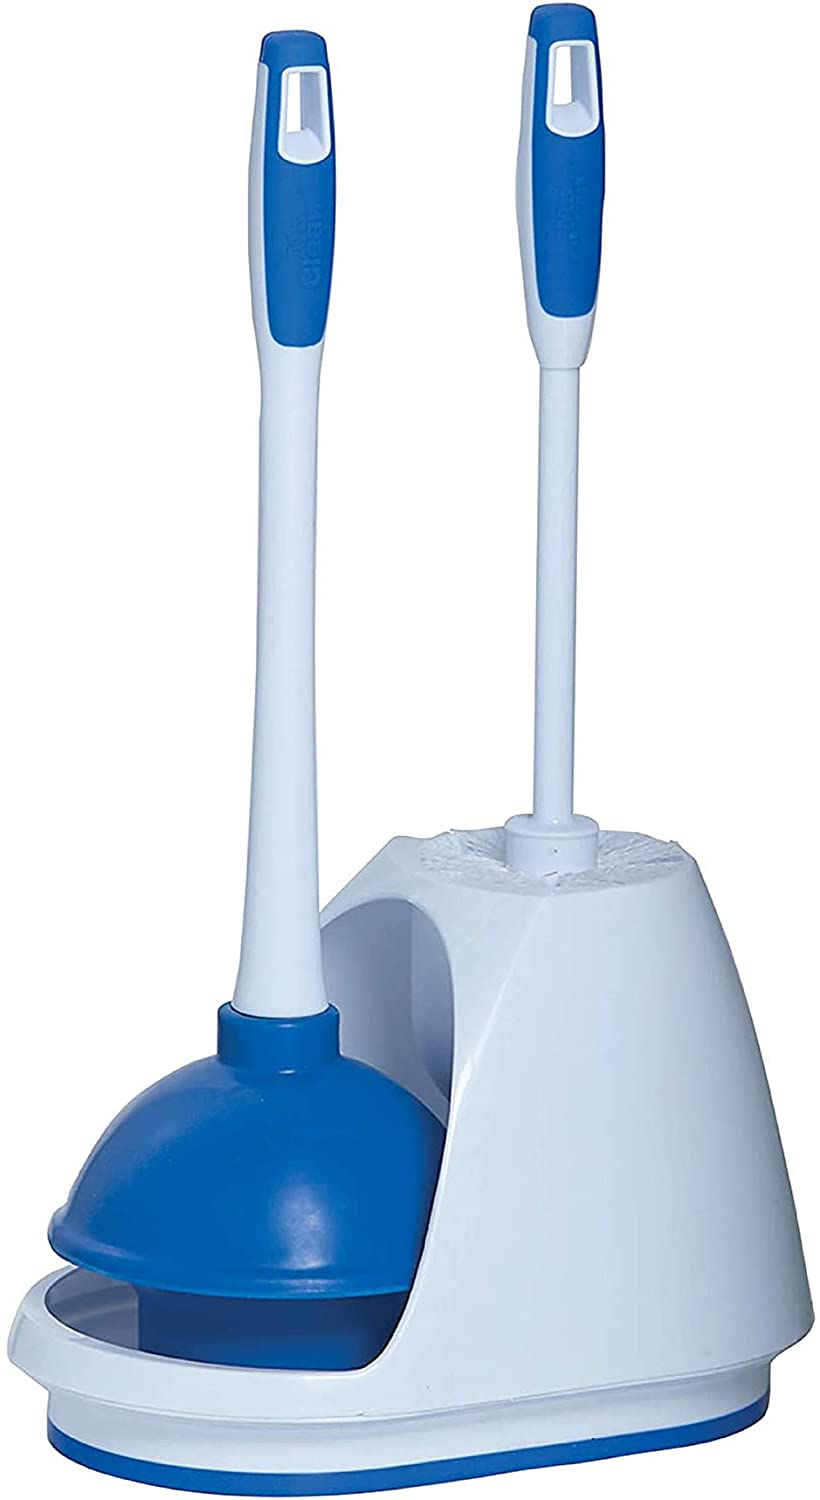 9 Count Turbo Plunger and Bowl Brush Caddy Set and Cleaning Pads